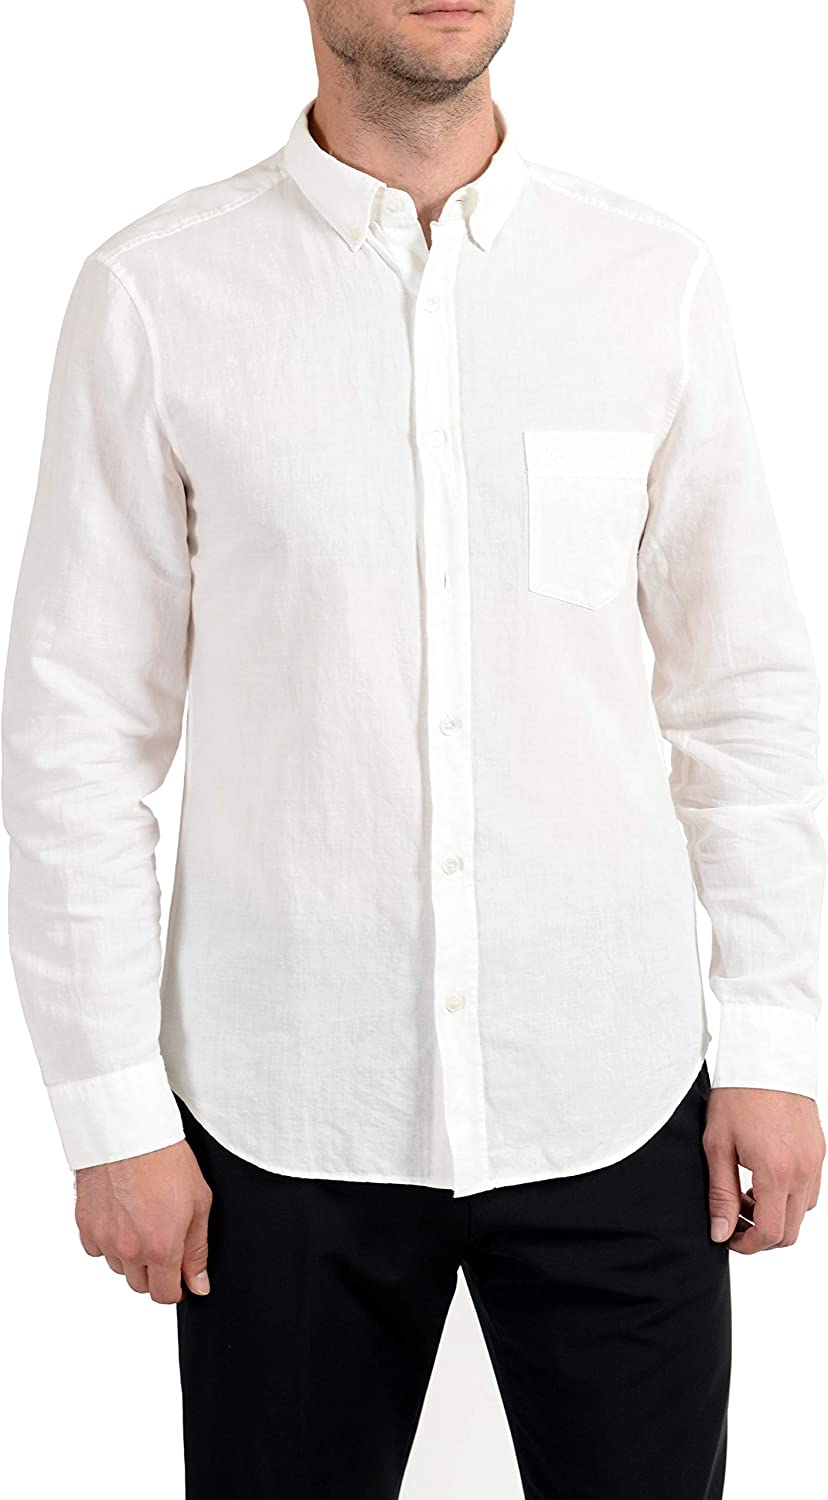 Gorgeous BURBERRY Max 72% OFF mens Casual